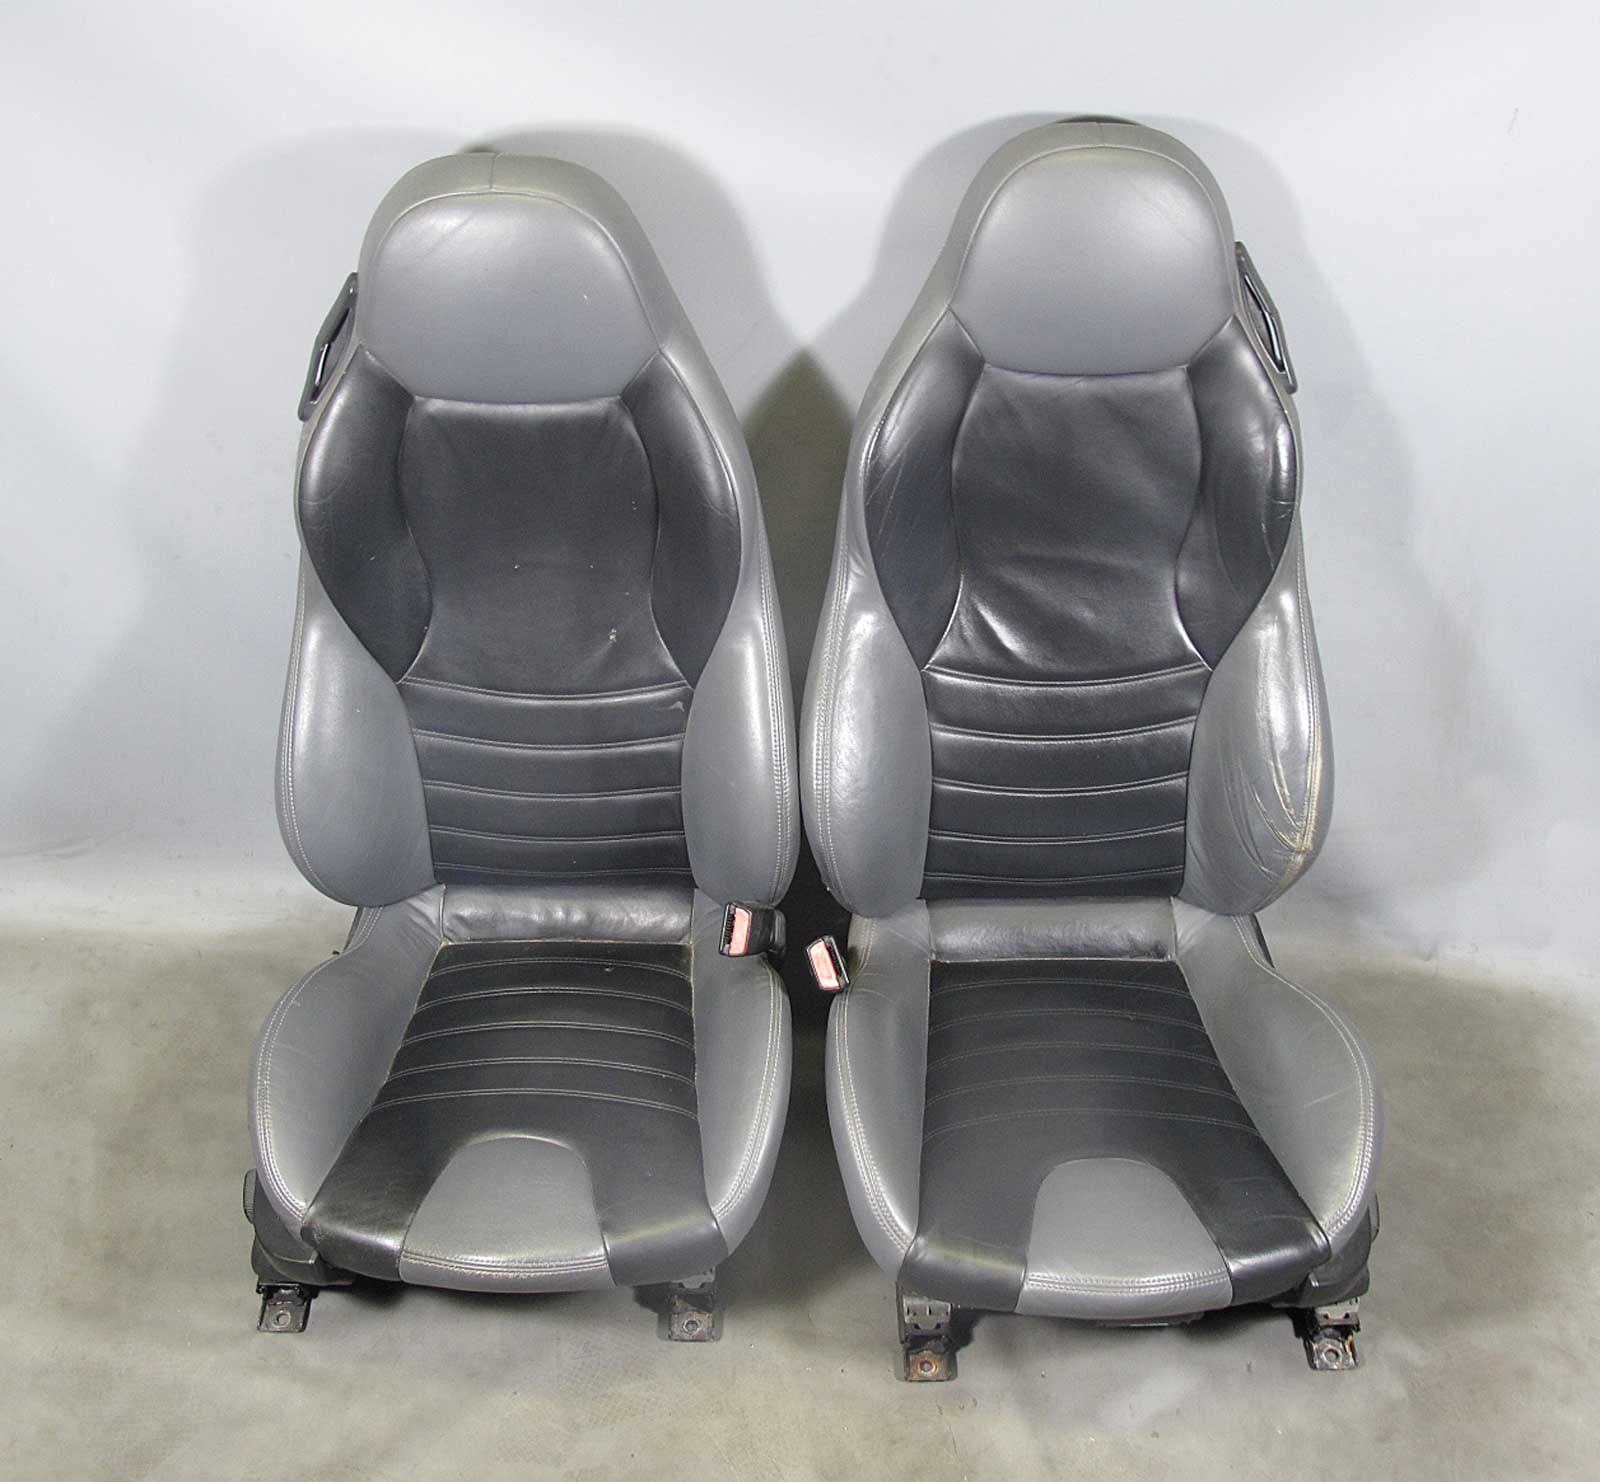 Bmw Z3 Sport Seats: BMW Z3 M Roadster Coupe Factory Front Sports Seats Pair